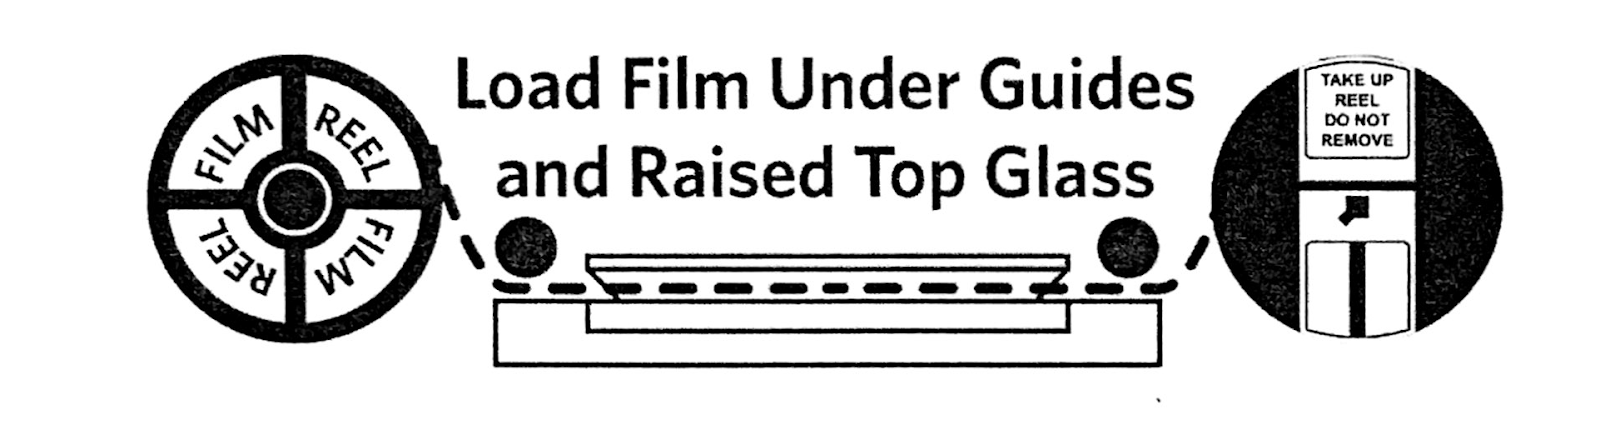 Load film under guides and raised top glass